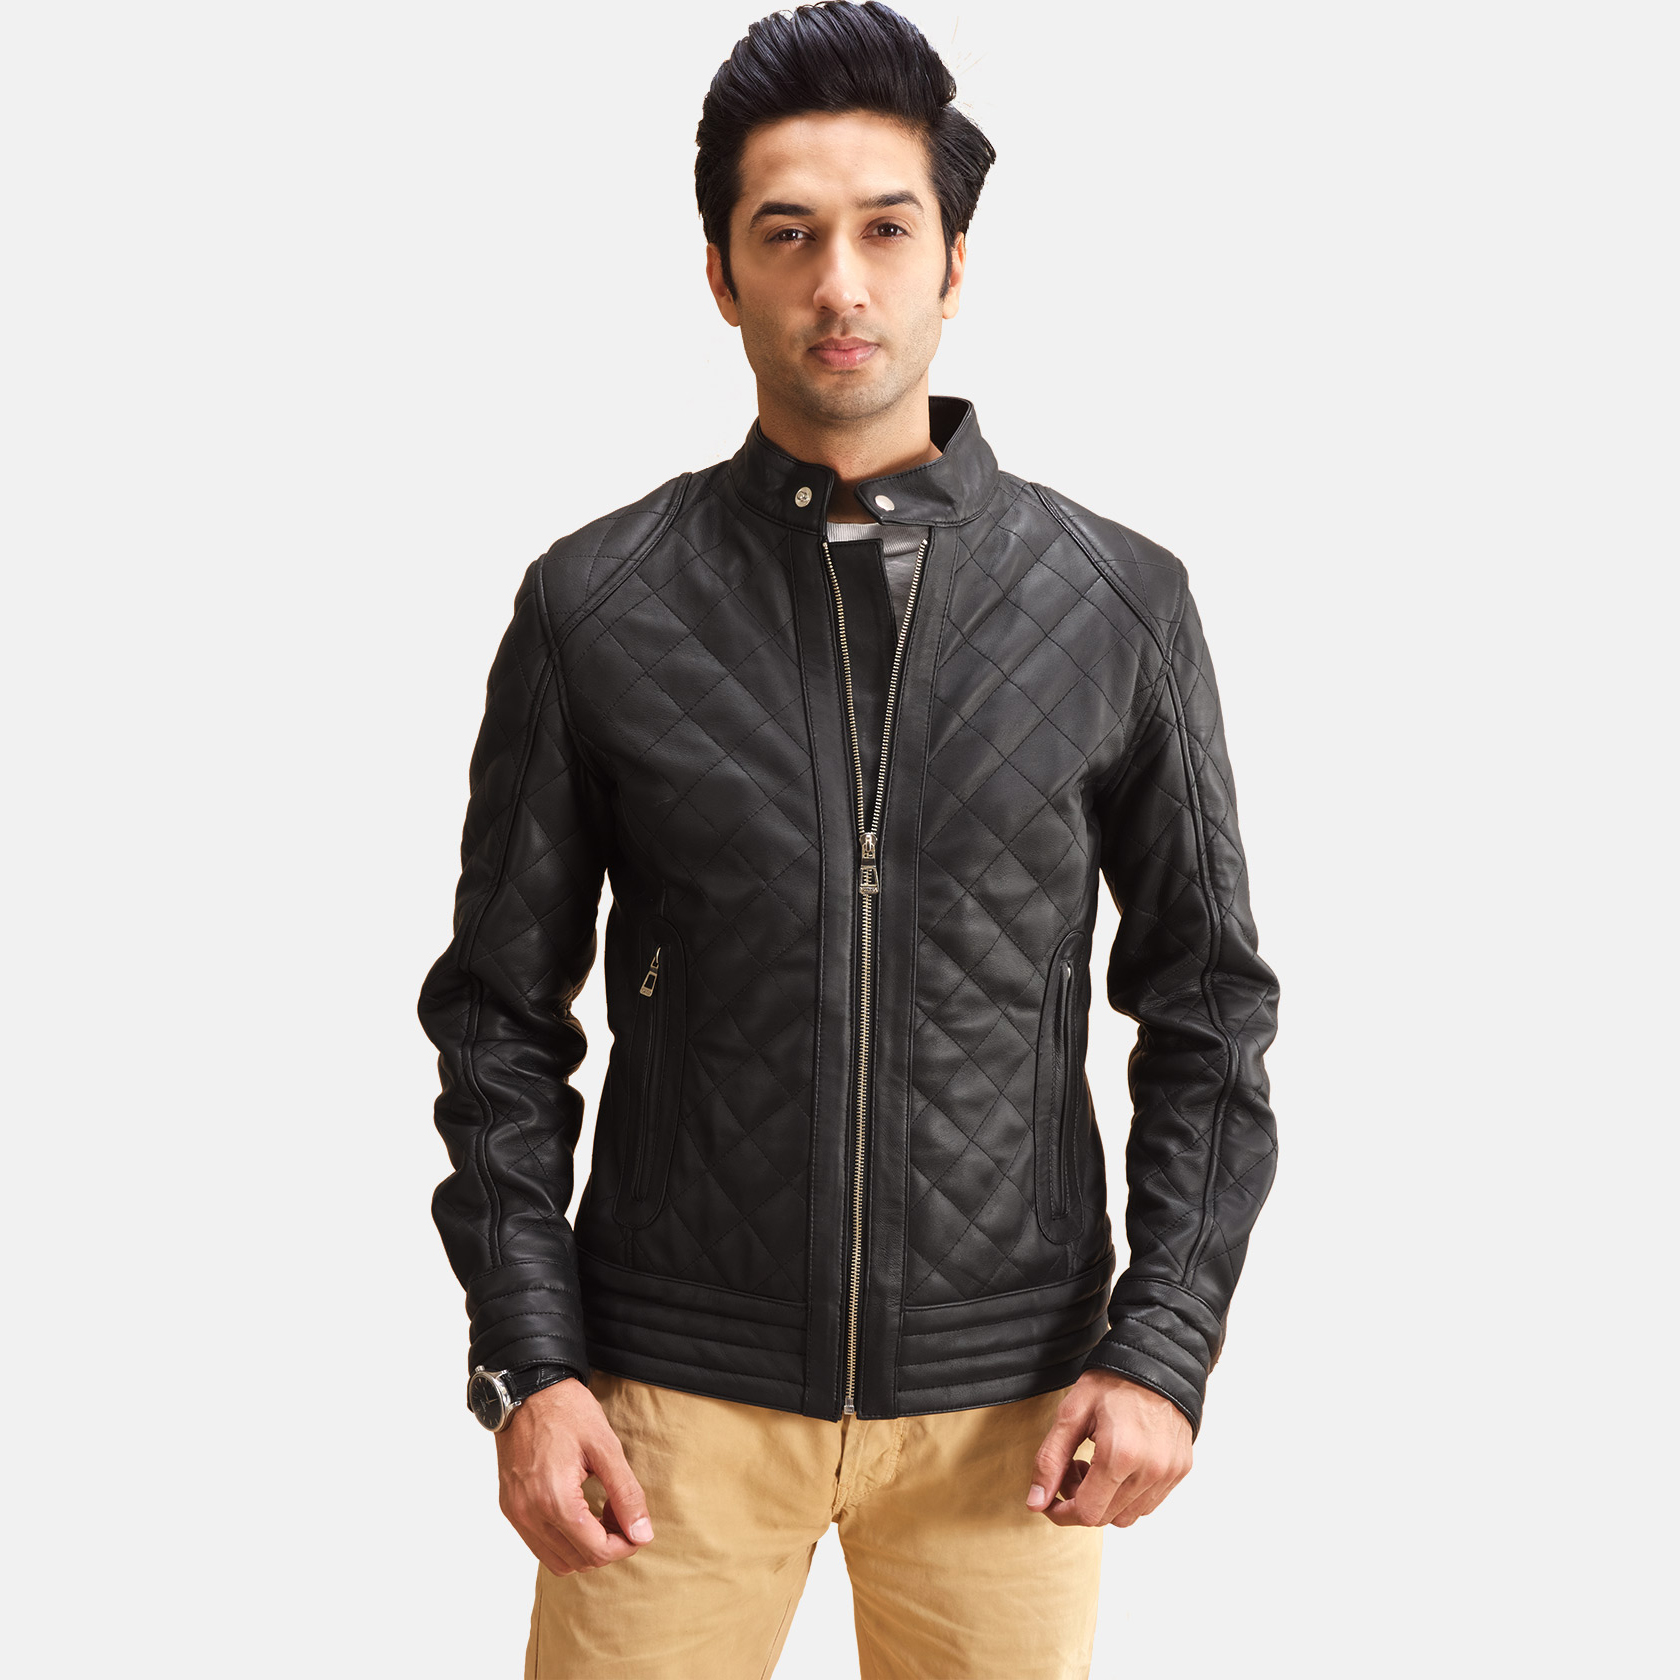 Men's Henry Quilted Black Leather Jacket 1